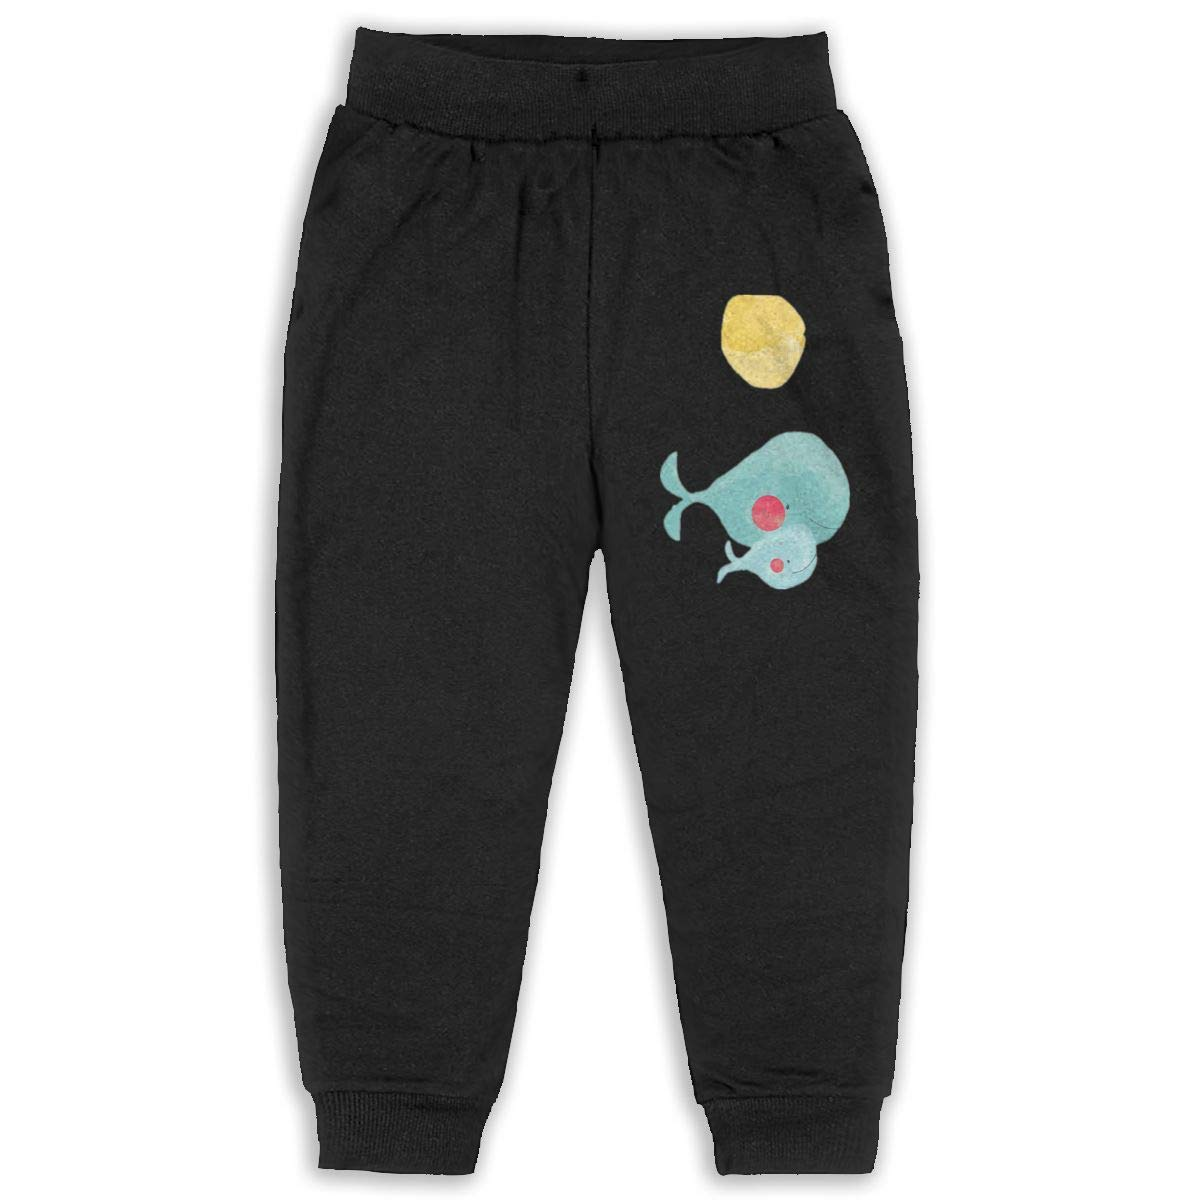 LFCLOSET Cartoon Whale Mom and Baby Children Cartoon Cotton Sweatpants Sport Jogger Elastic Pants